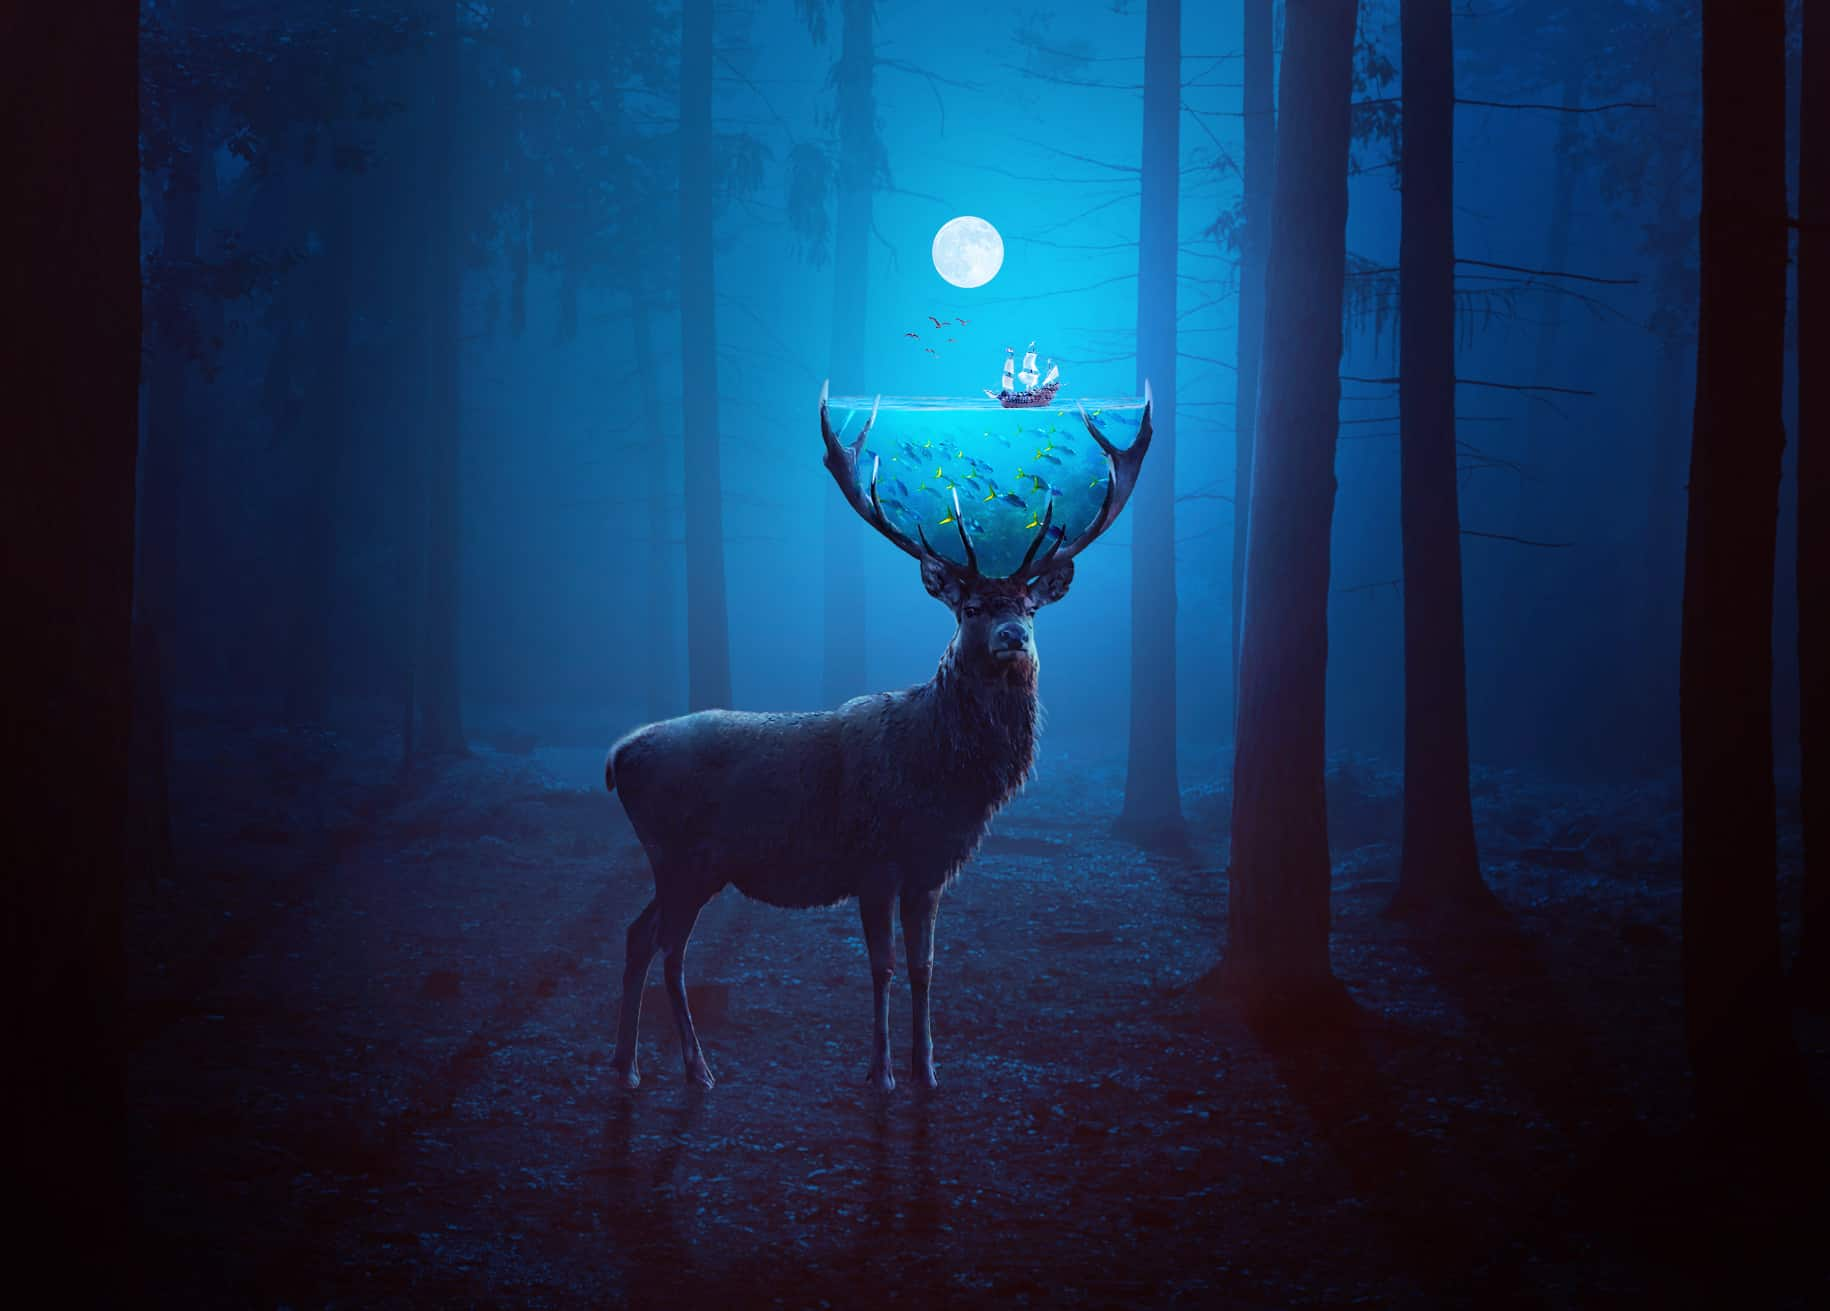 How to Create a Surreal Deer Photo Manipulation with Adobe Photoshop